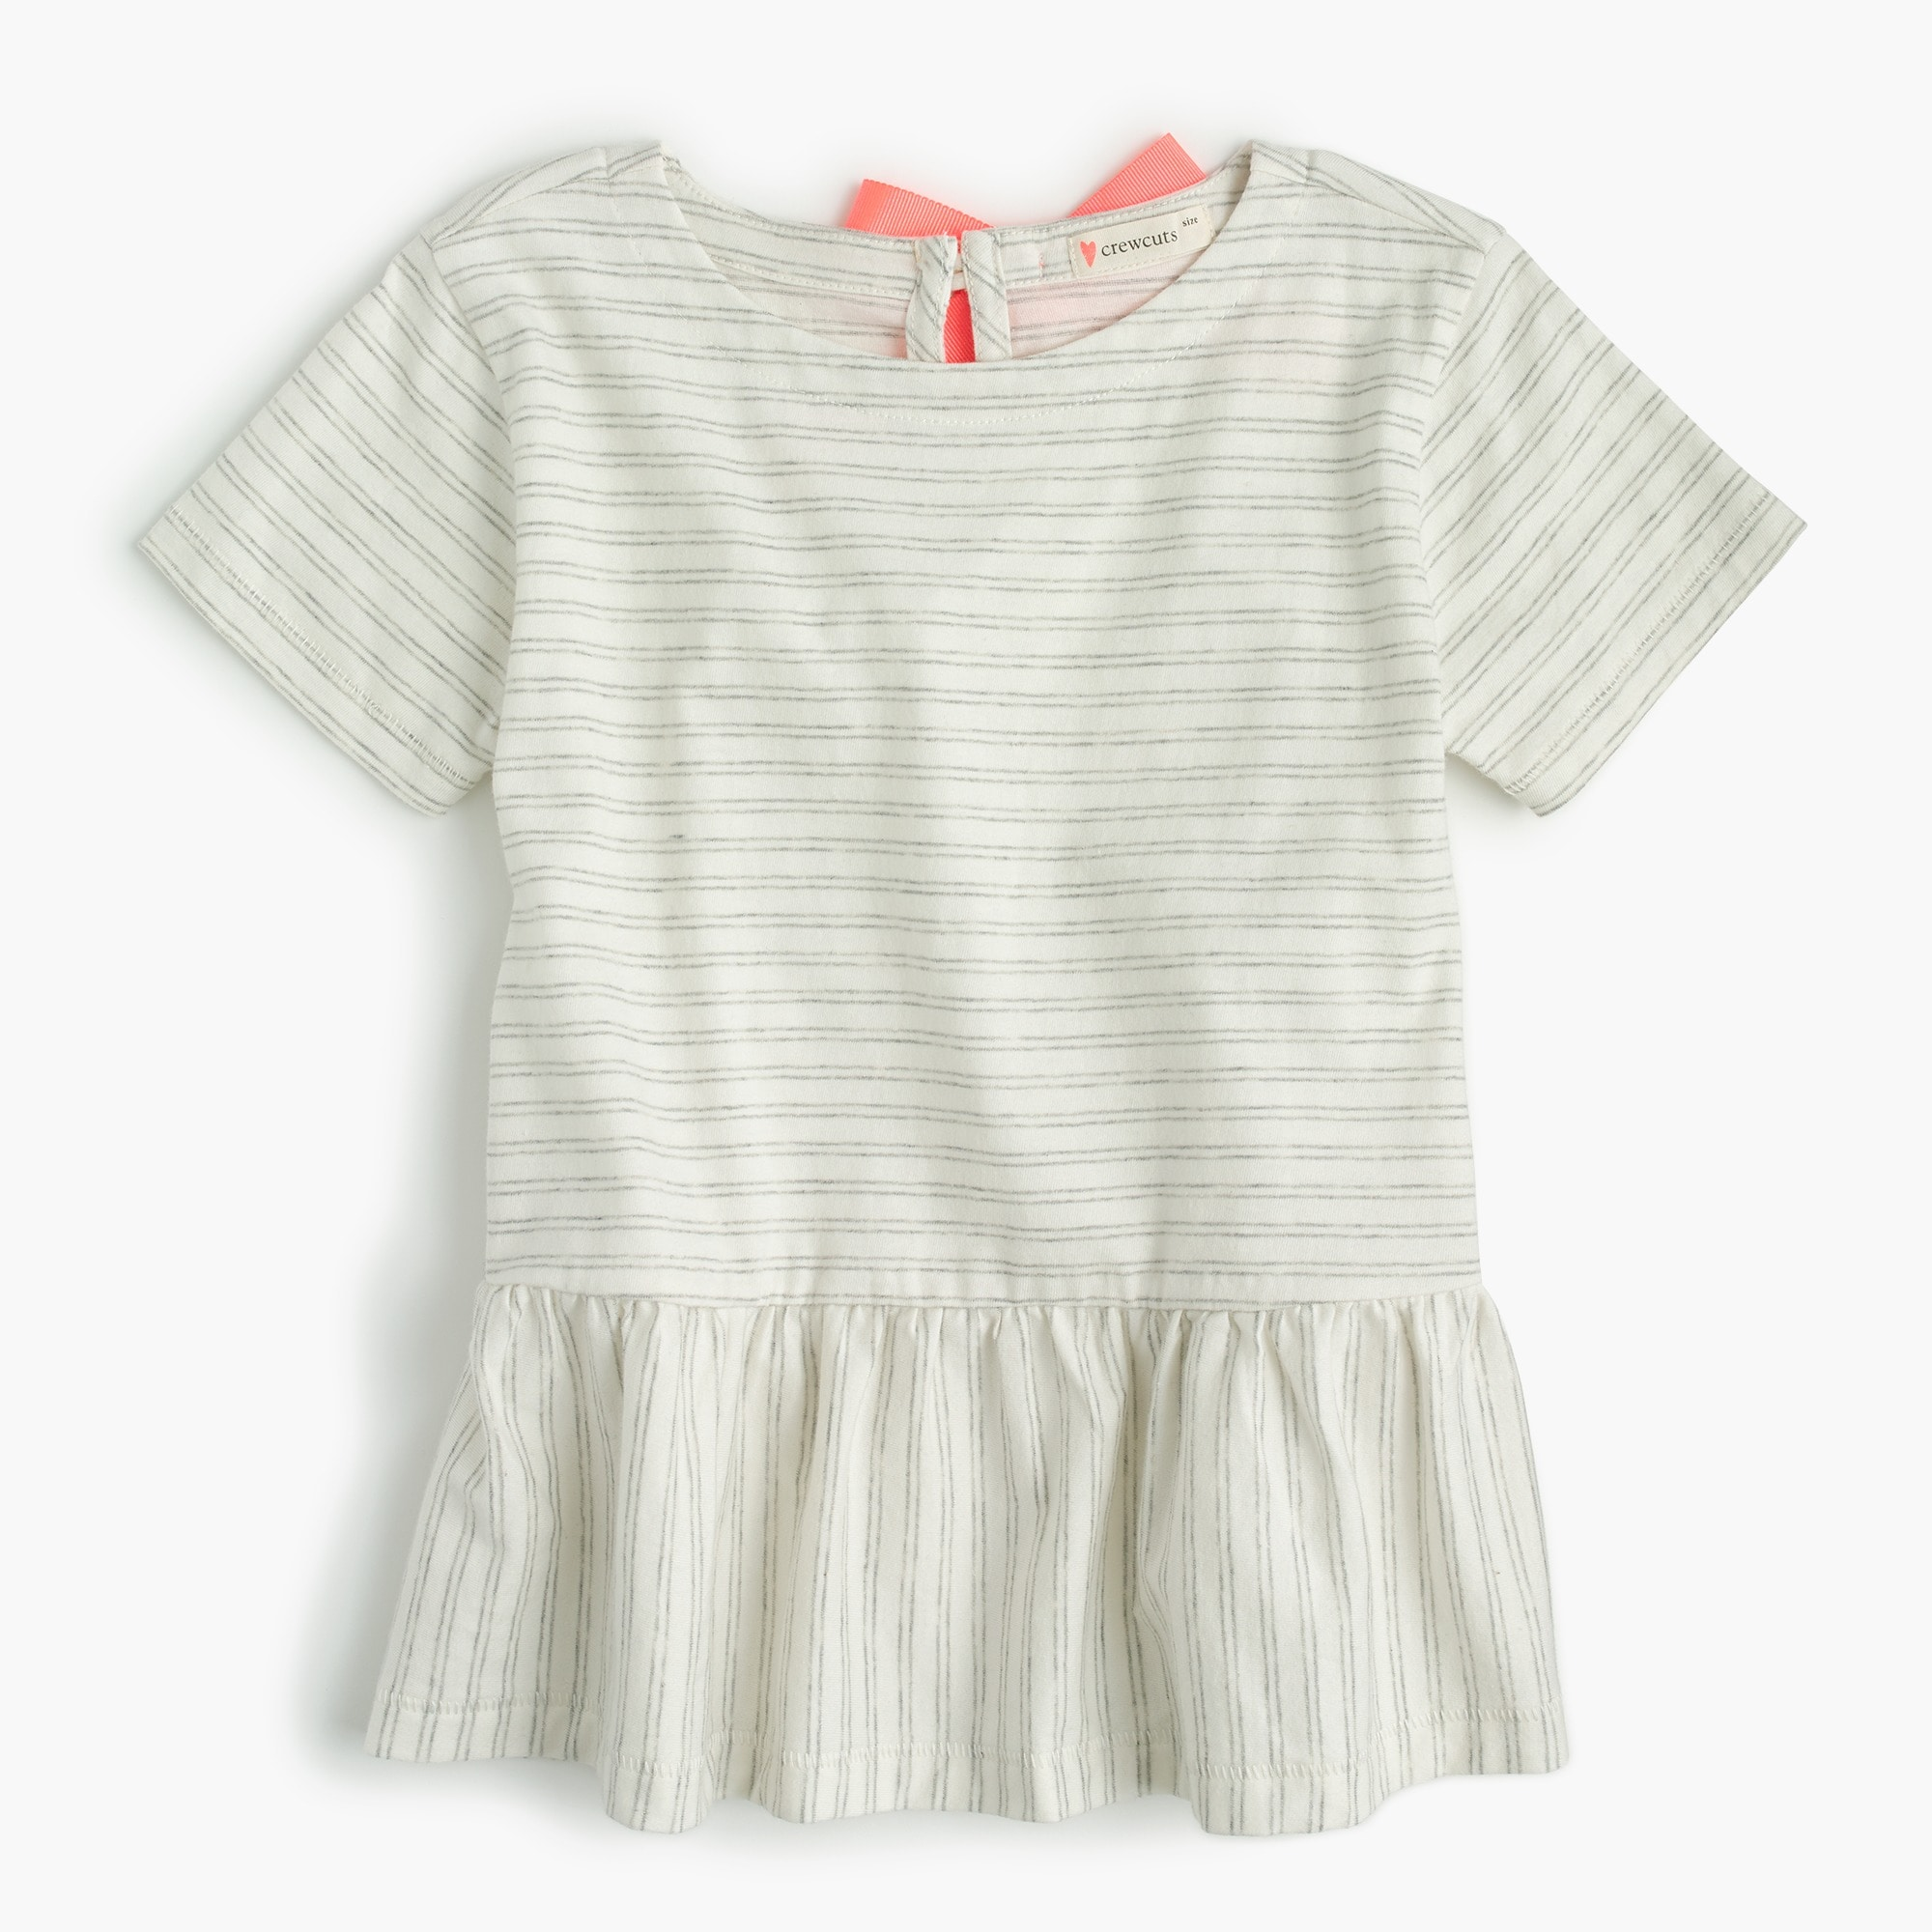 Girls' peplum T-shirt girl new arrivals c